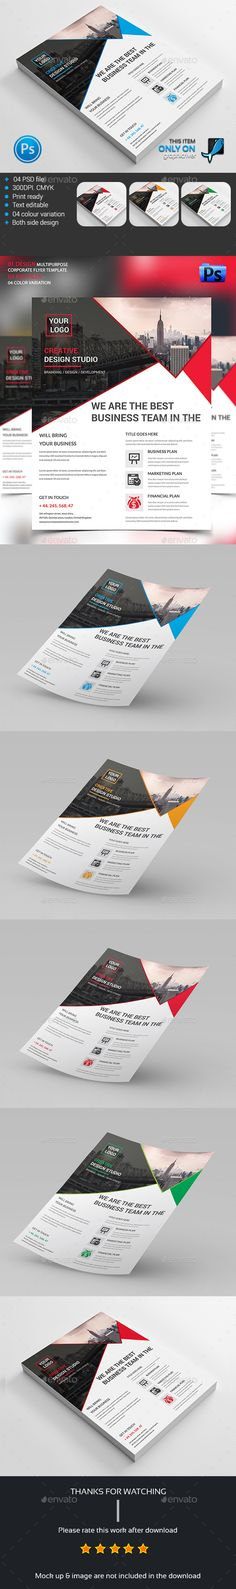 Photography business flyer design Business flyers, Photography - psd brochure design inspiration